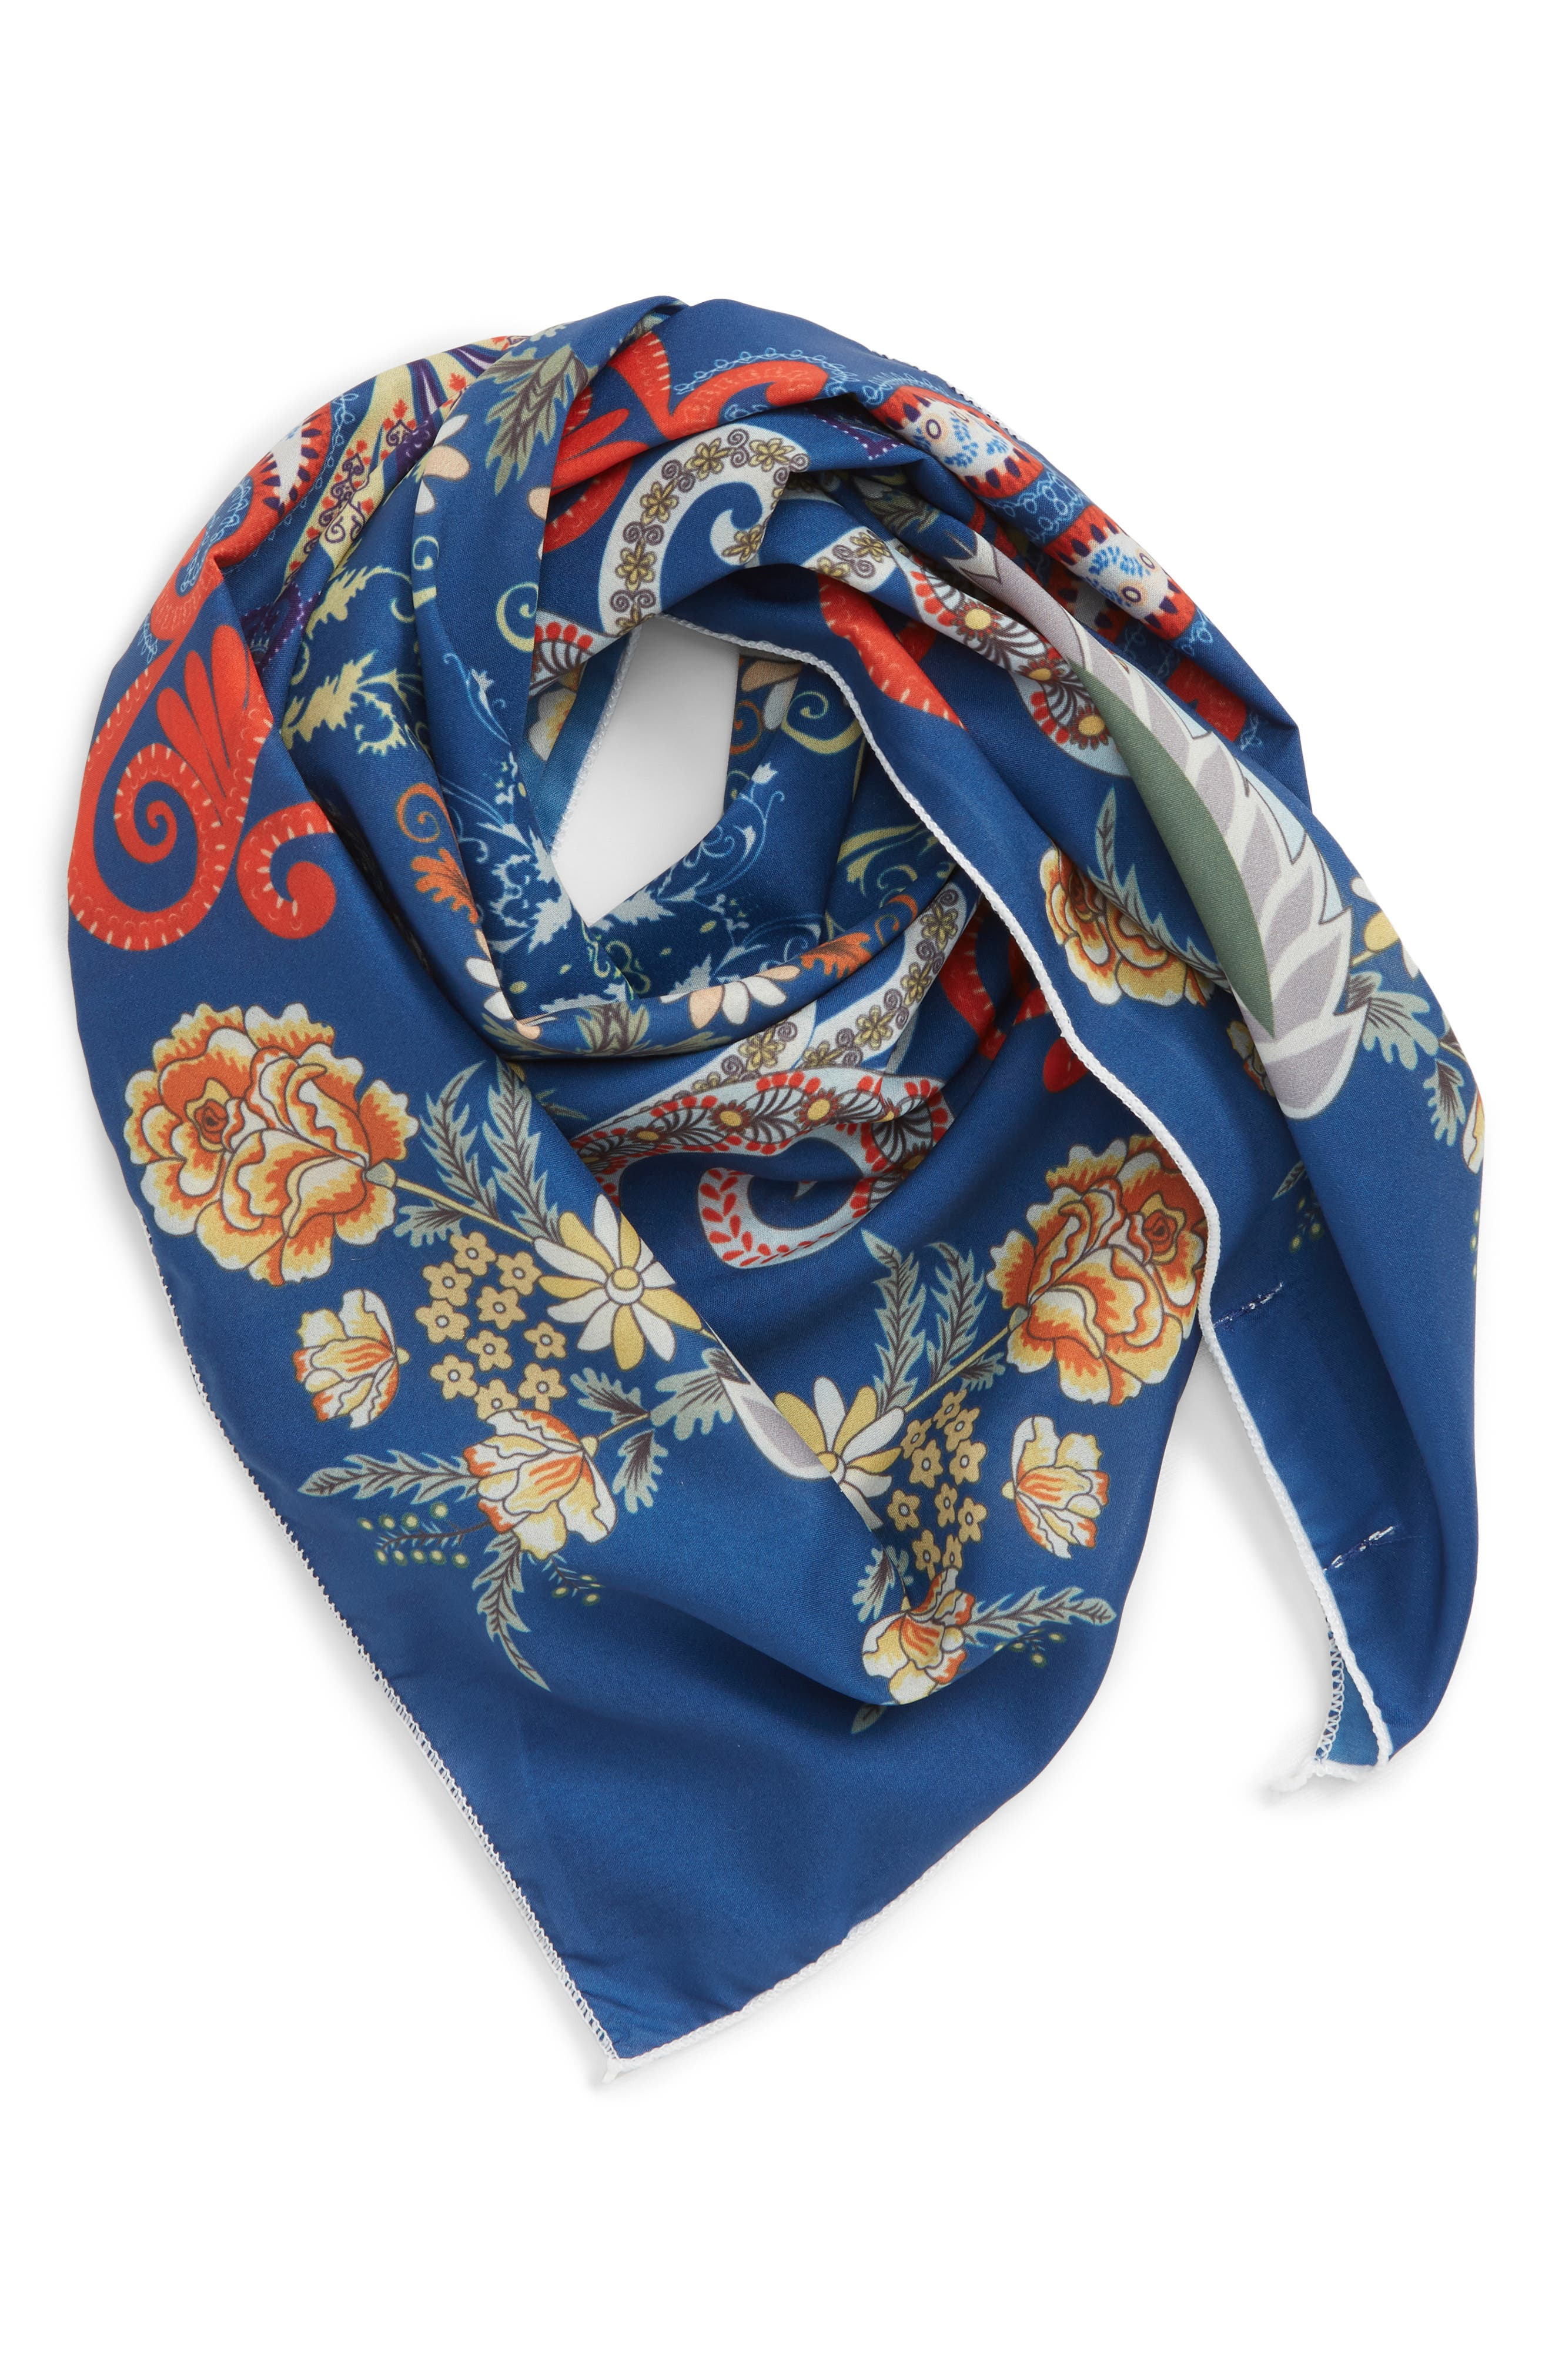 SOLE SOCIETY, Floral Print Neckerchief, Main thumbnail 1, color, 400